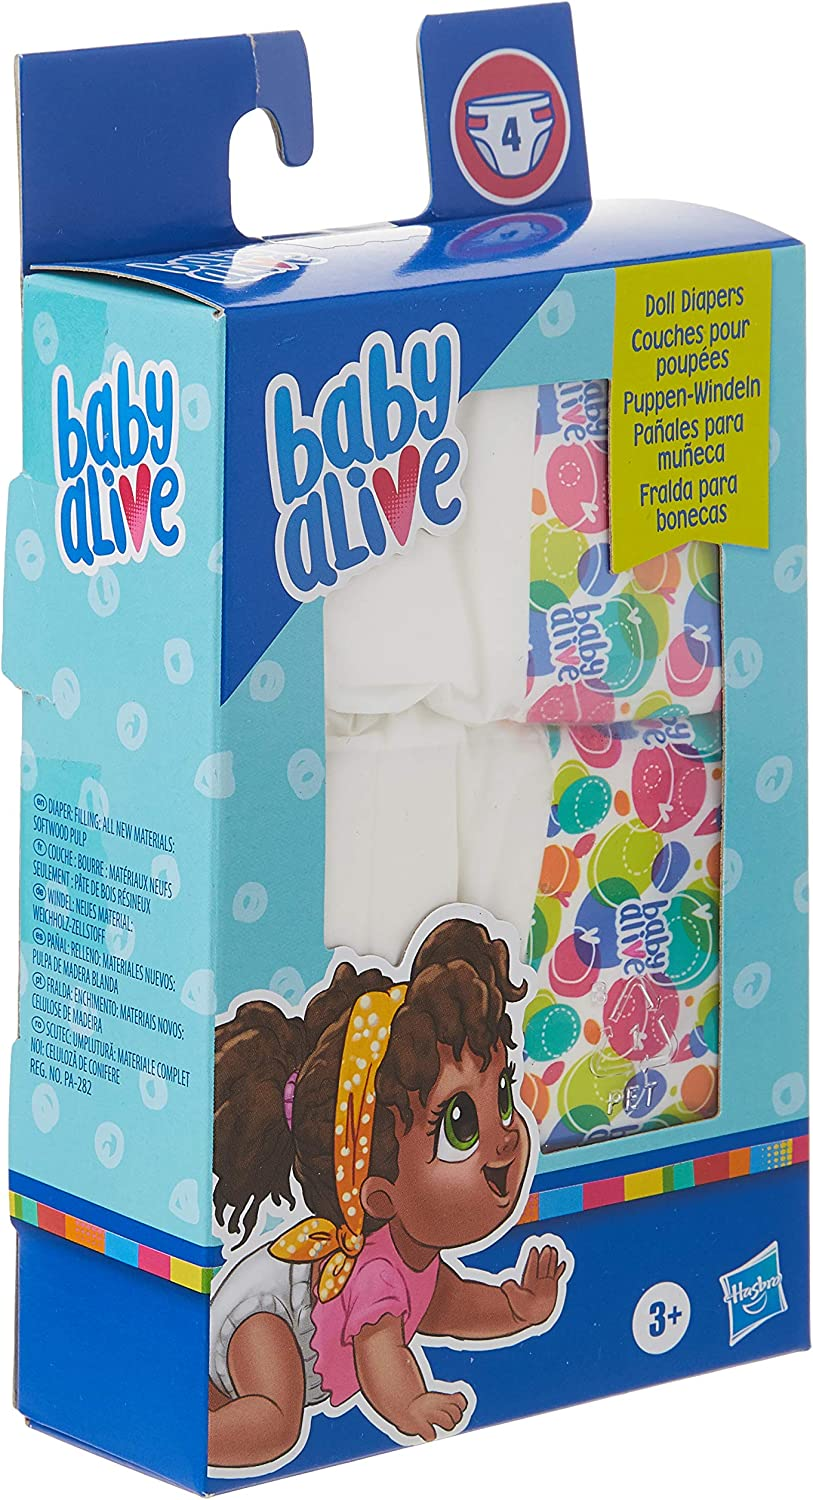 Waterproof Diaper for Baby Alive Reusable Baby Alive Diapers Doll Clothes 1 MEDIUM Reusable Doll Diapers Many Colors